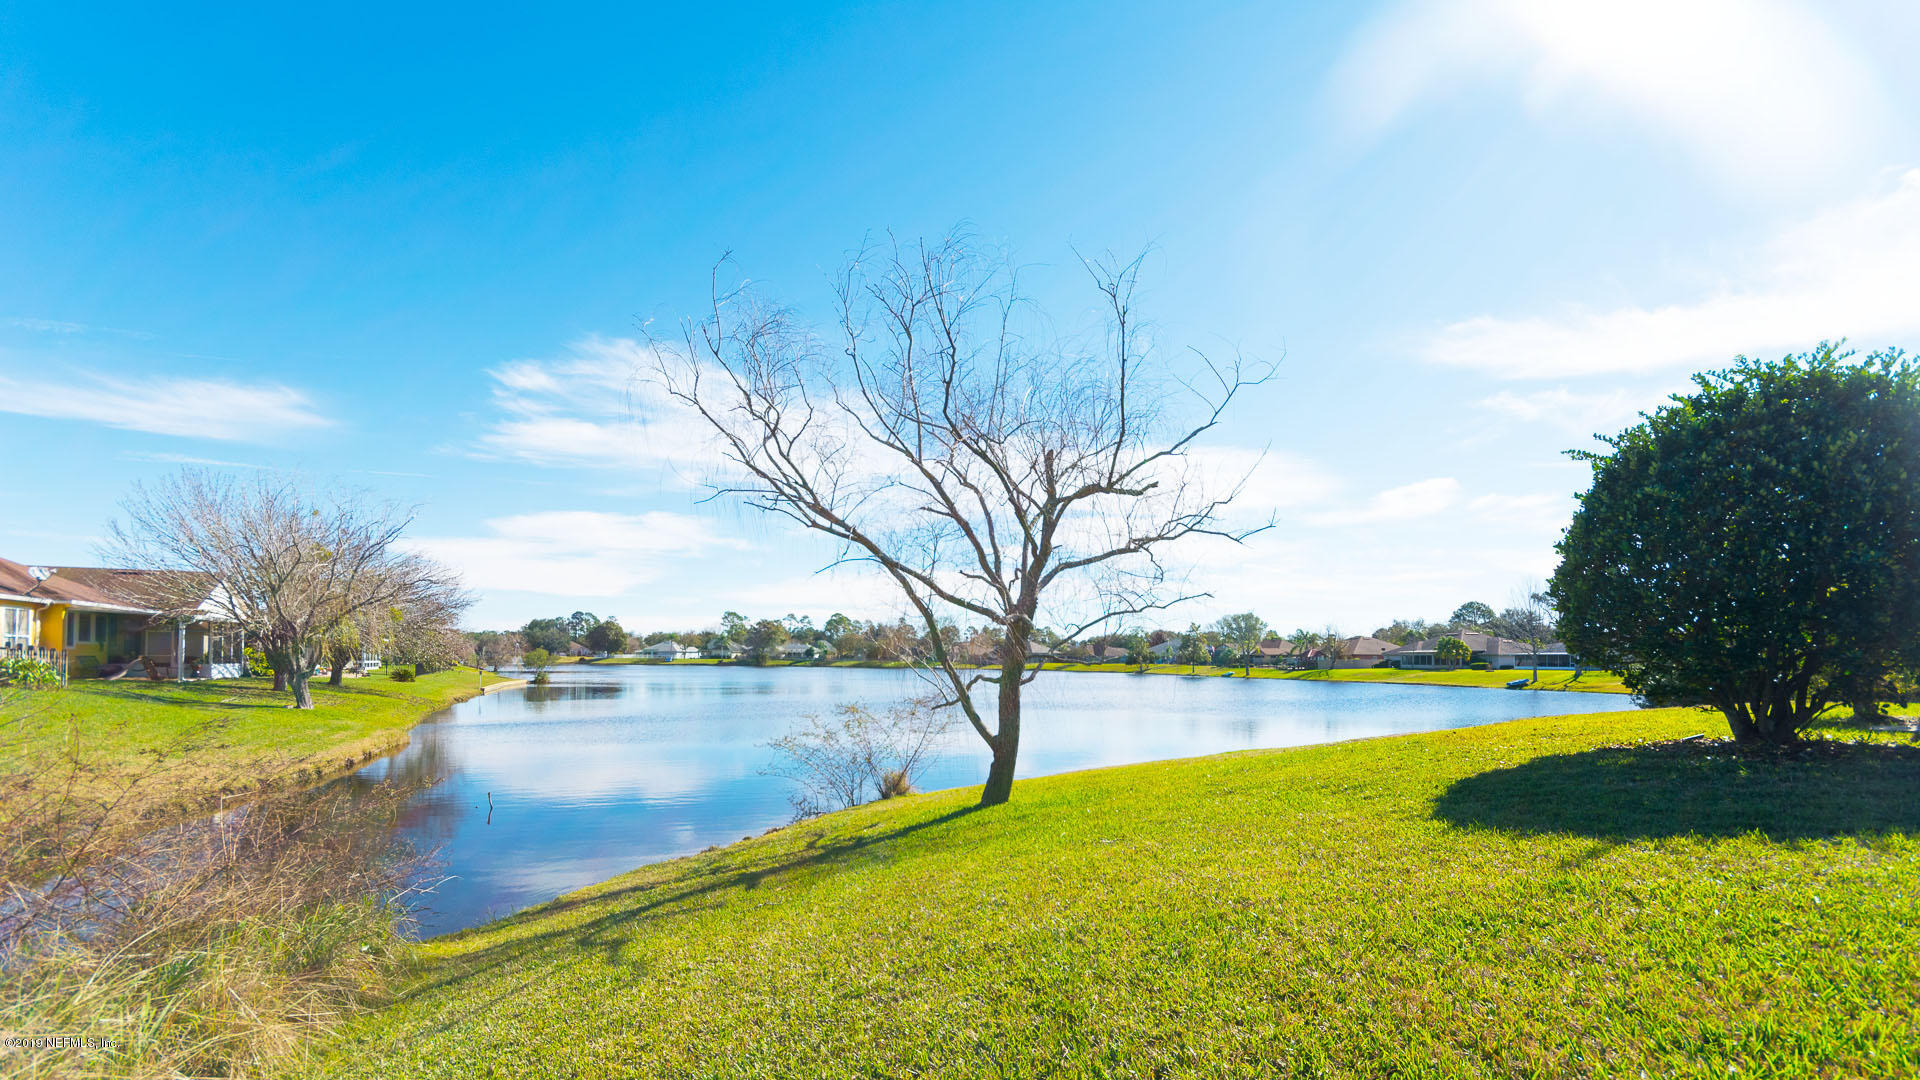 12987 WINTHROP COVE, JACKSONVILLE, FLORIDA 32224, 3 Bedrooms Bedrooms, ,2 BathroomsBathrooms,Residential - single family,For sale,WINTHROP COVE,973869